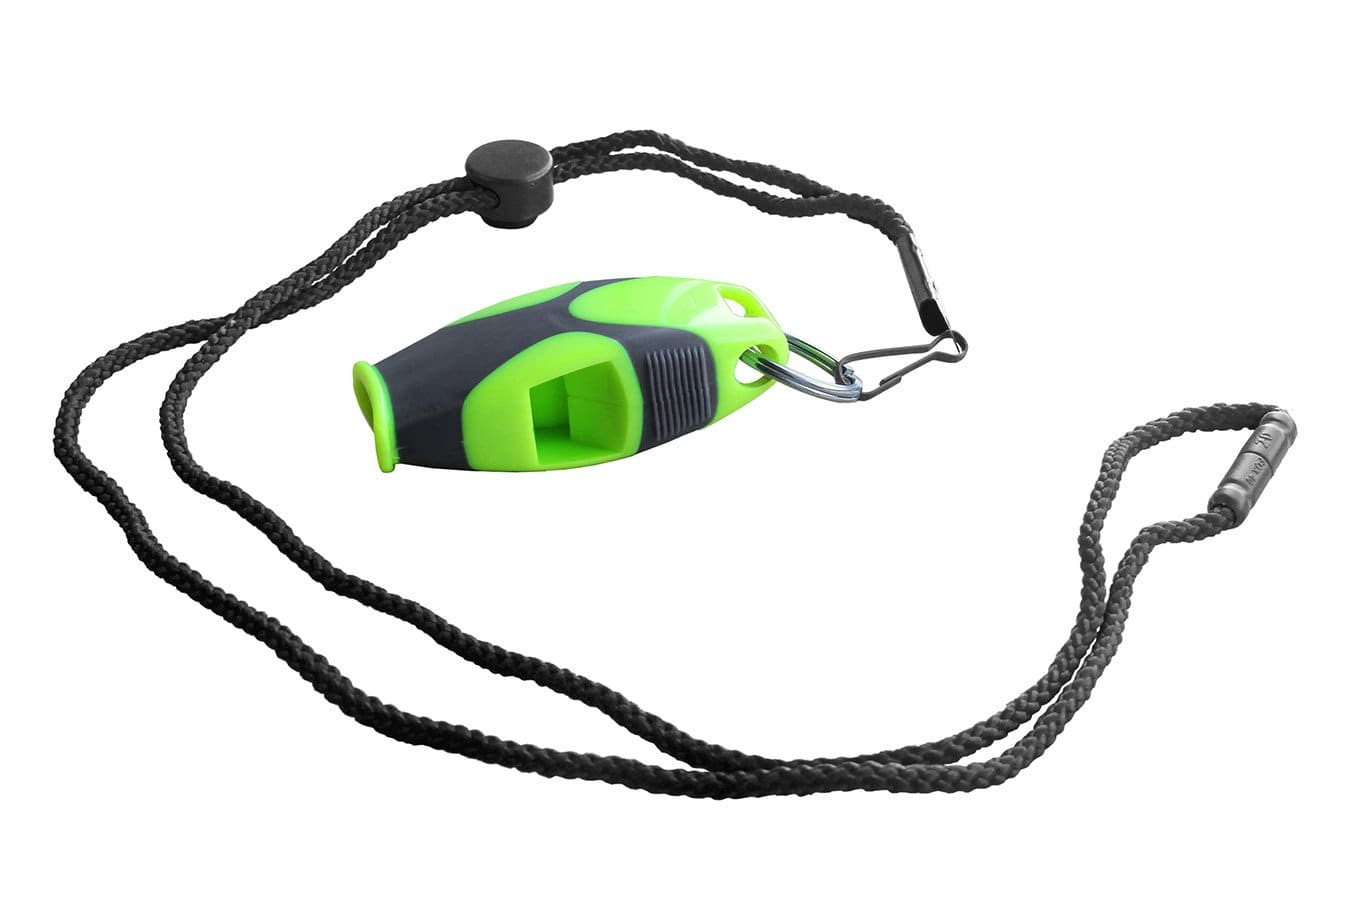 Sharx Rugby Whistle With Lanyard